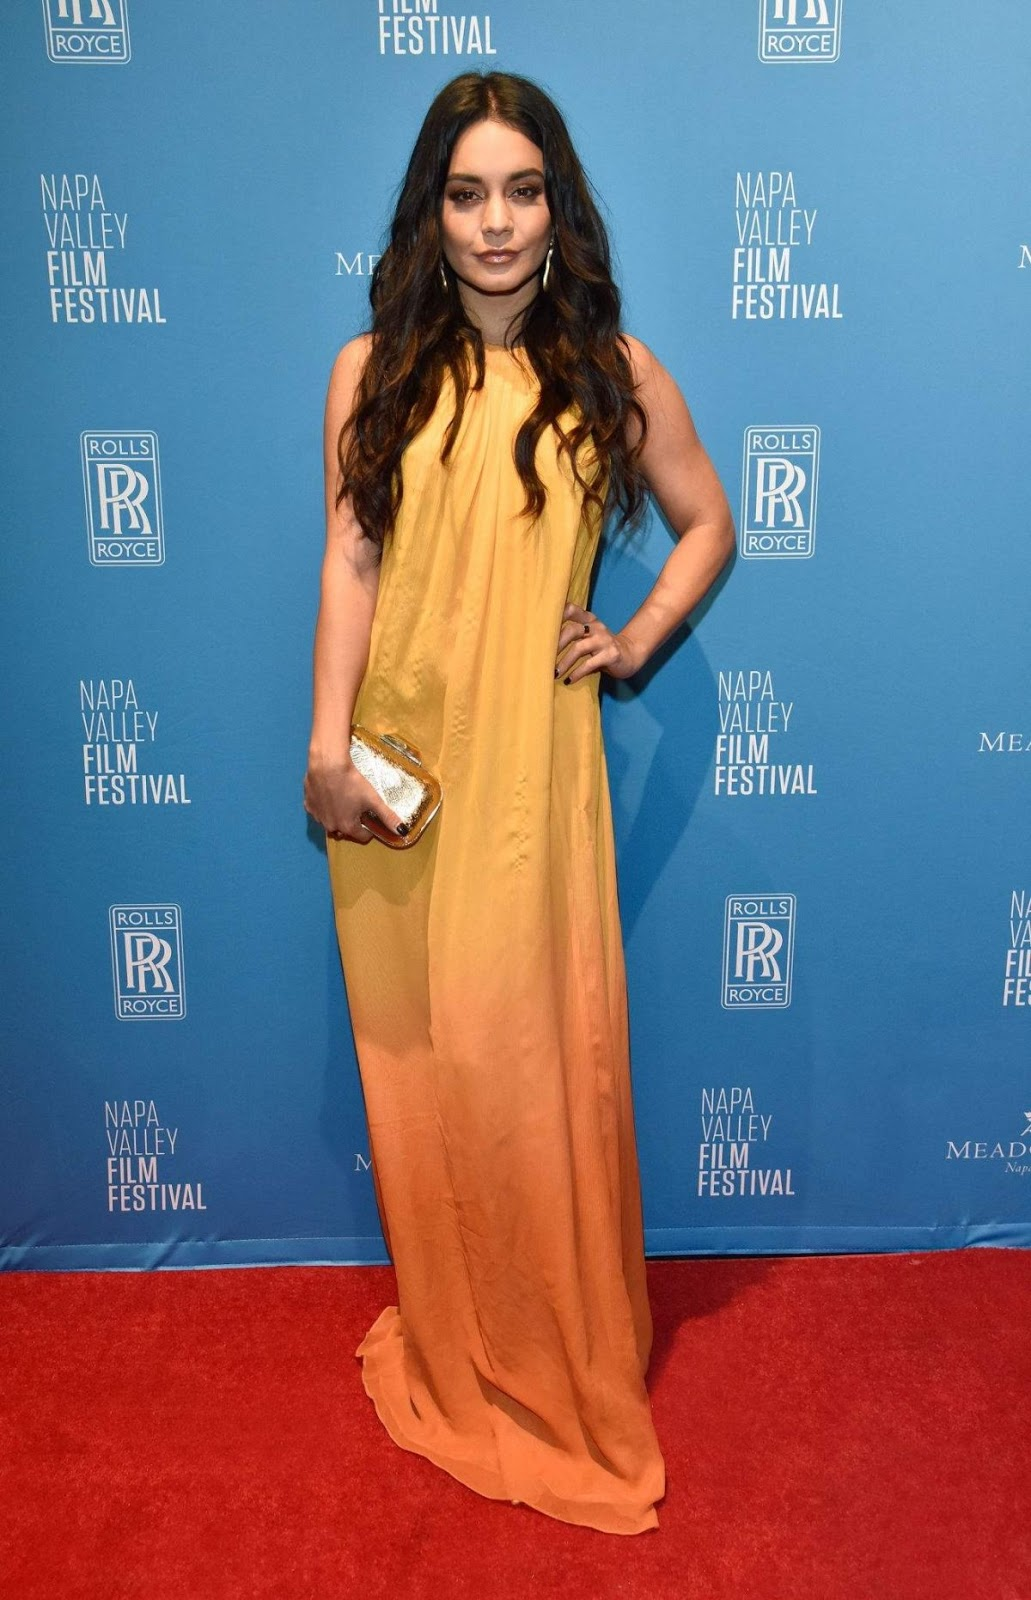 Vanessa Hudgens stuns in a backless dress as she is awarded alongside stars at the Napa Valley Film Festival